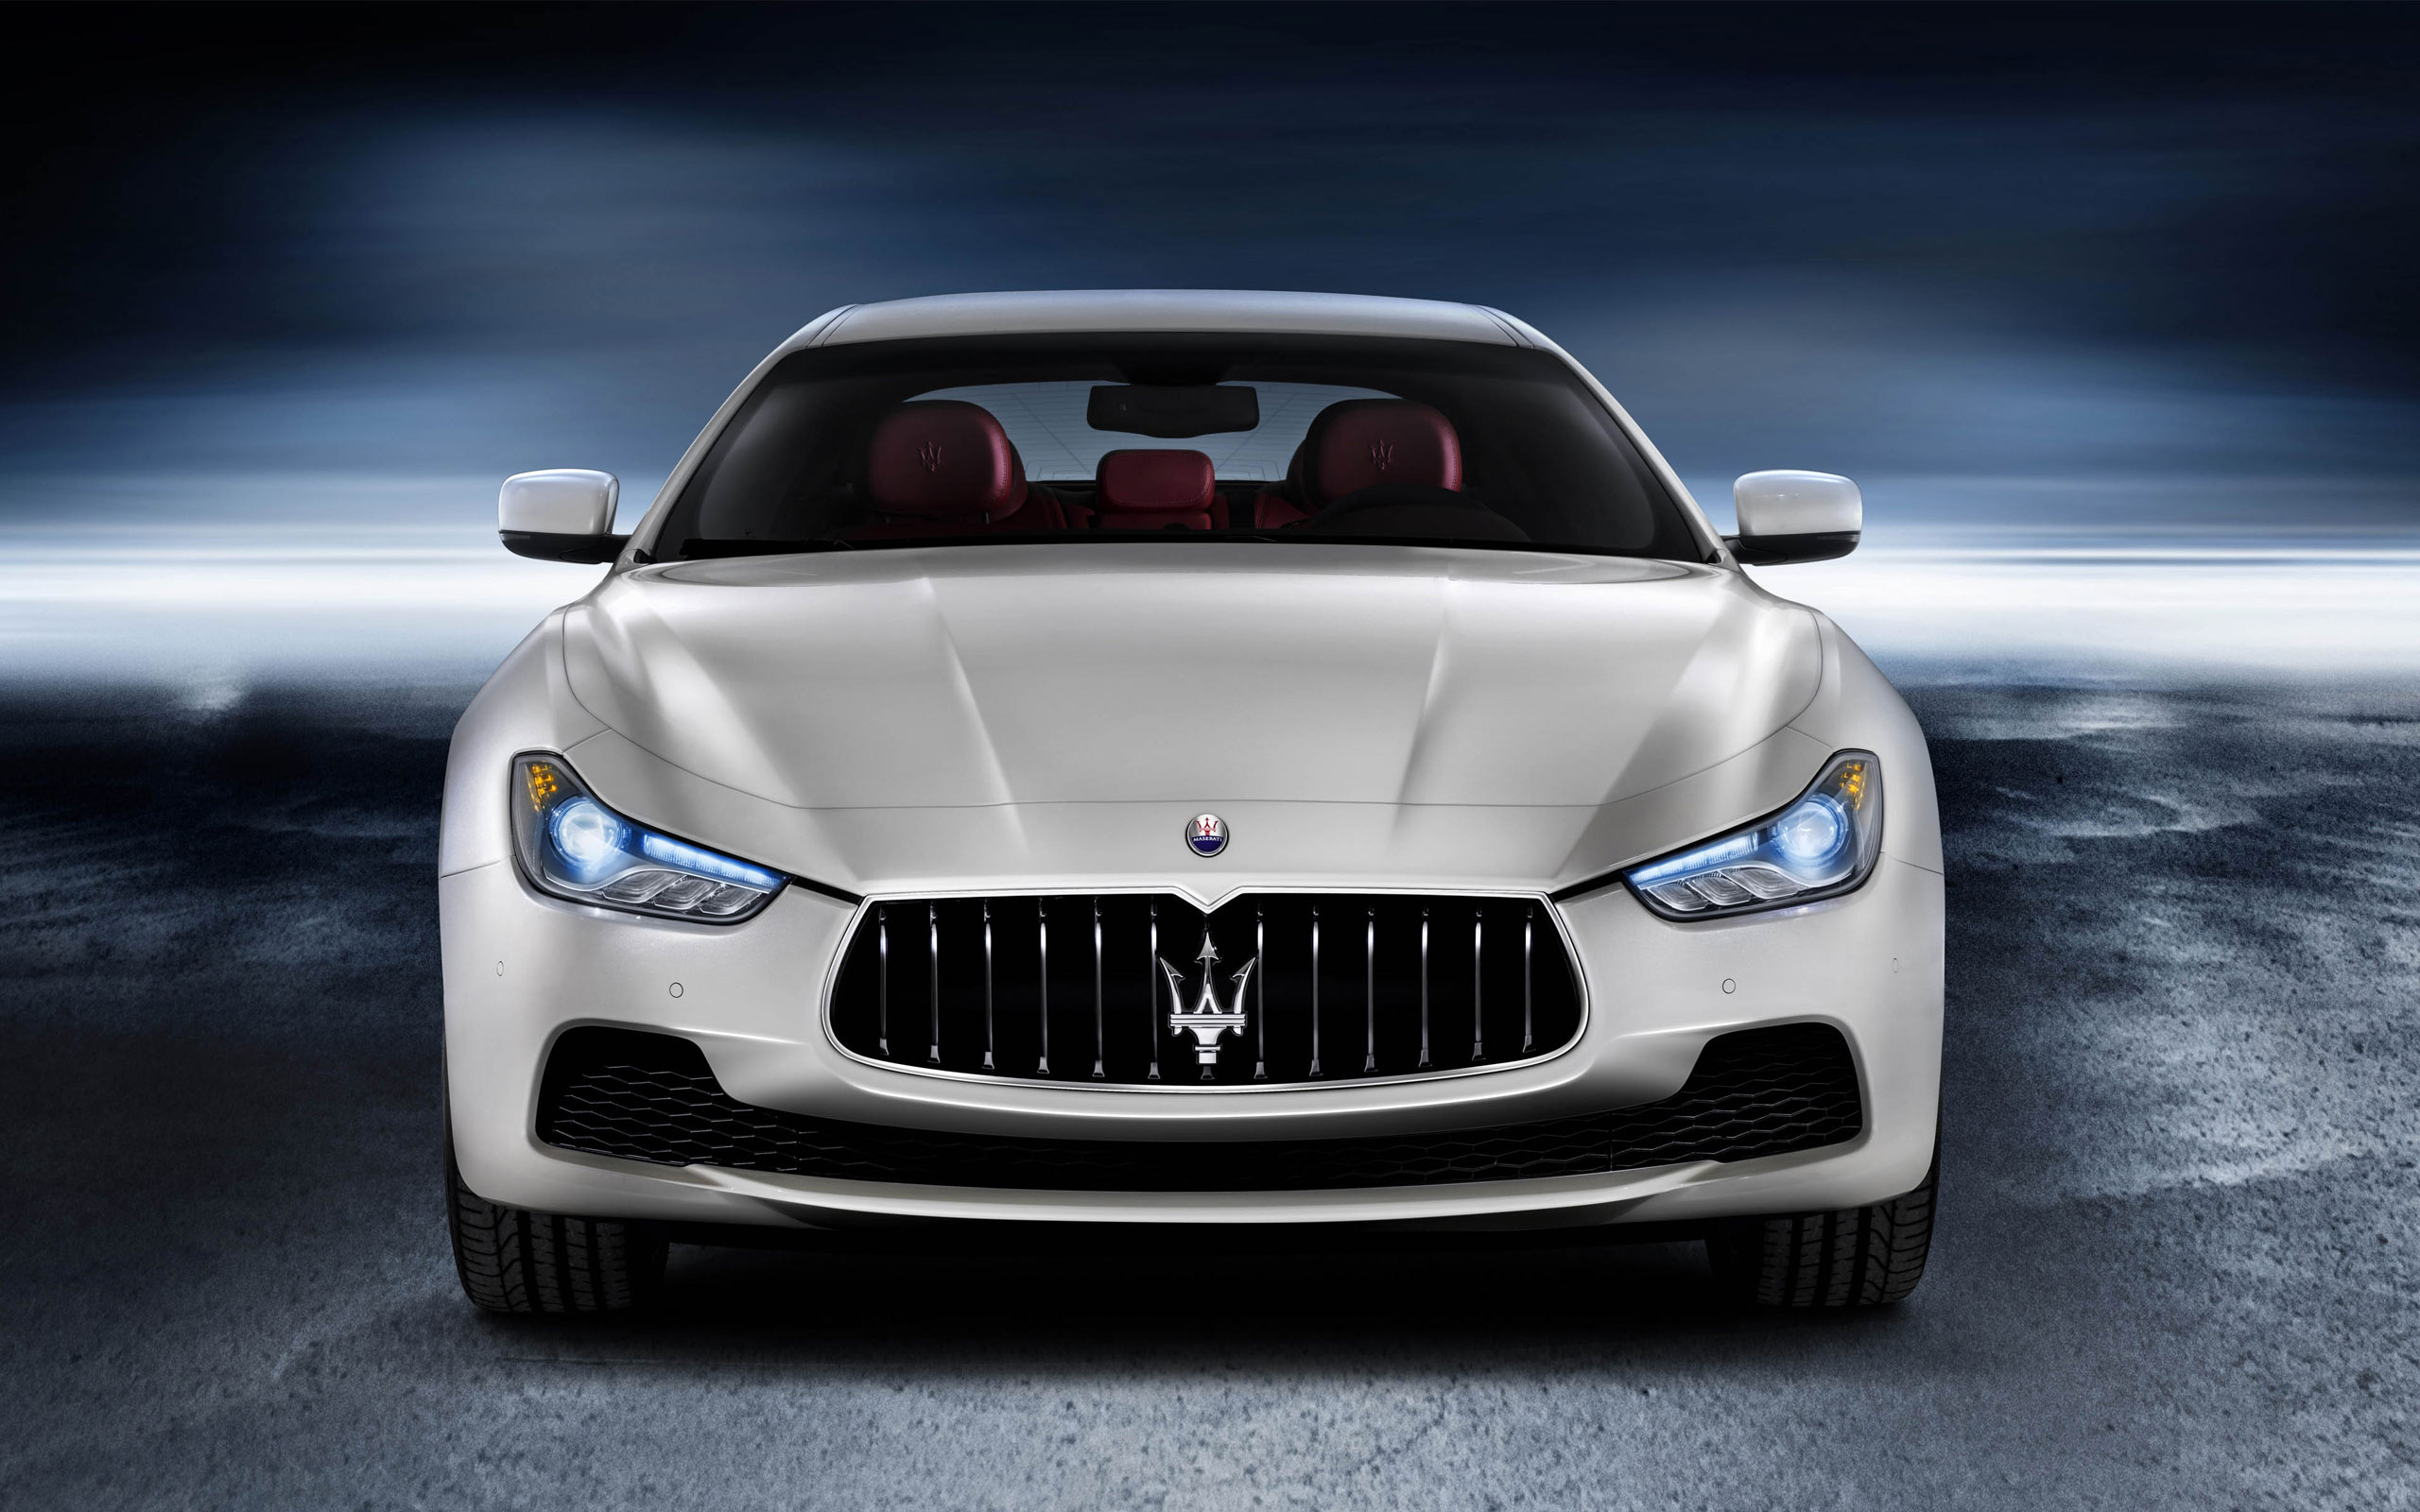 Maserati Ghibli Wallpaper Free Downloads #1053 Wallpaper ...